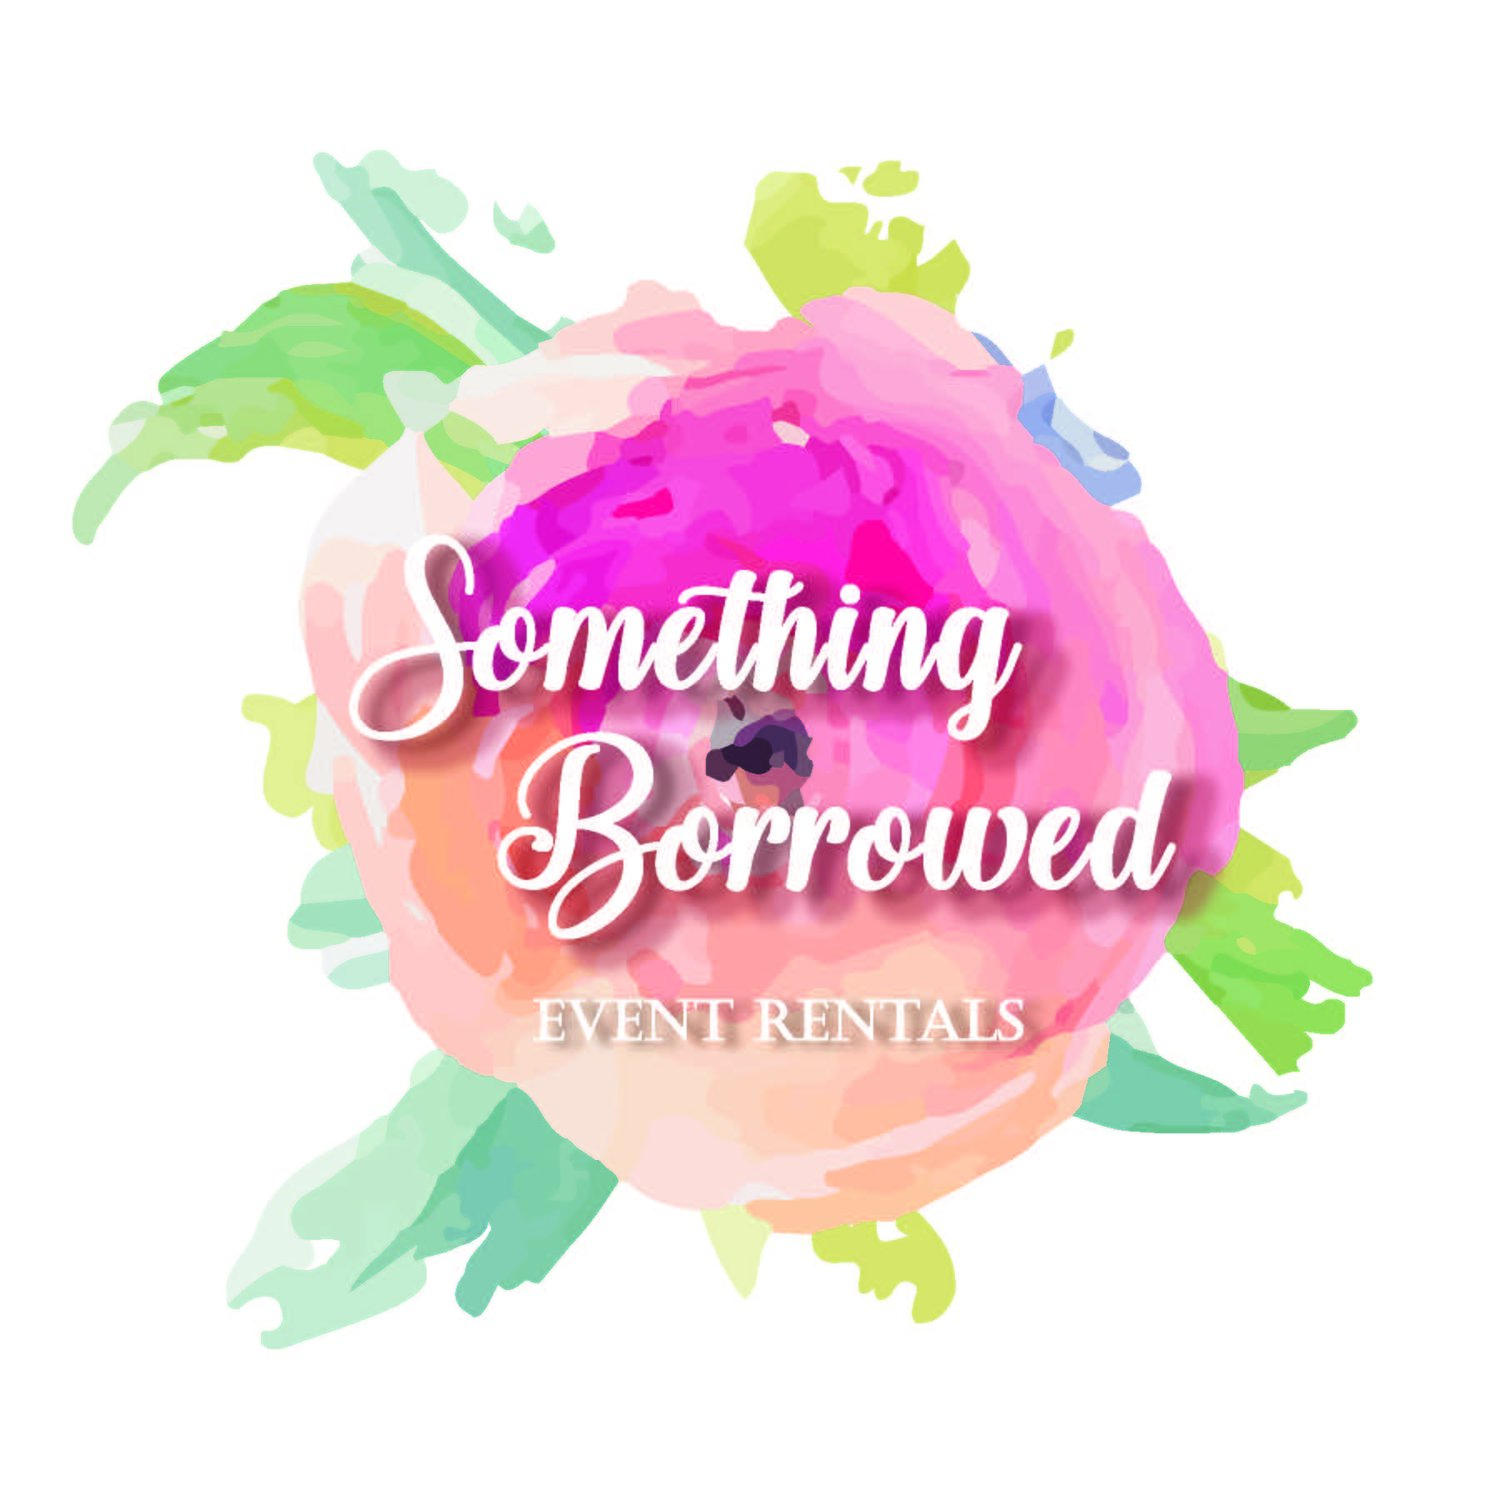 Something Borrowed Event Rentals